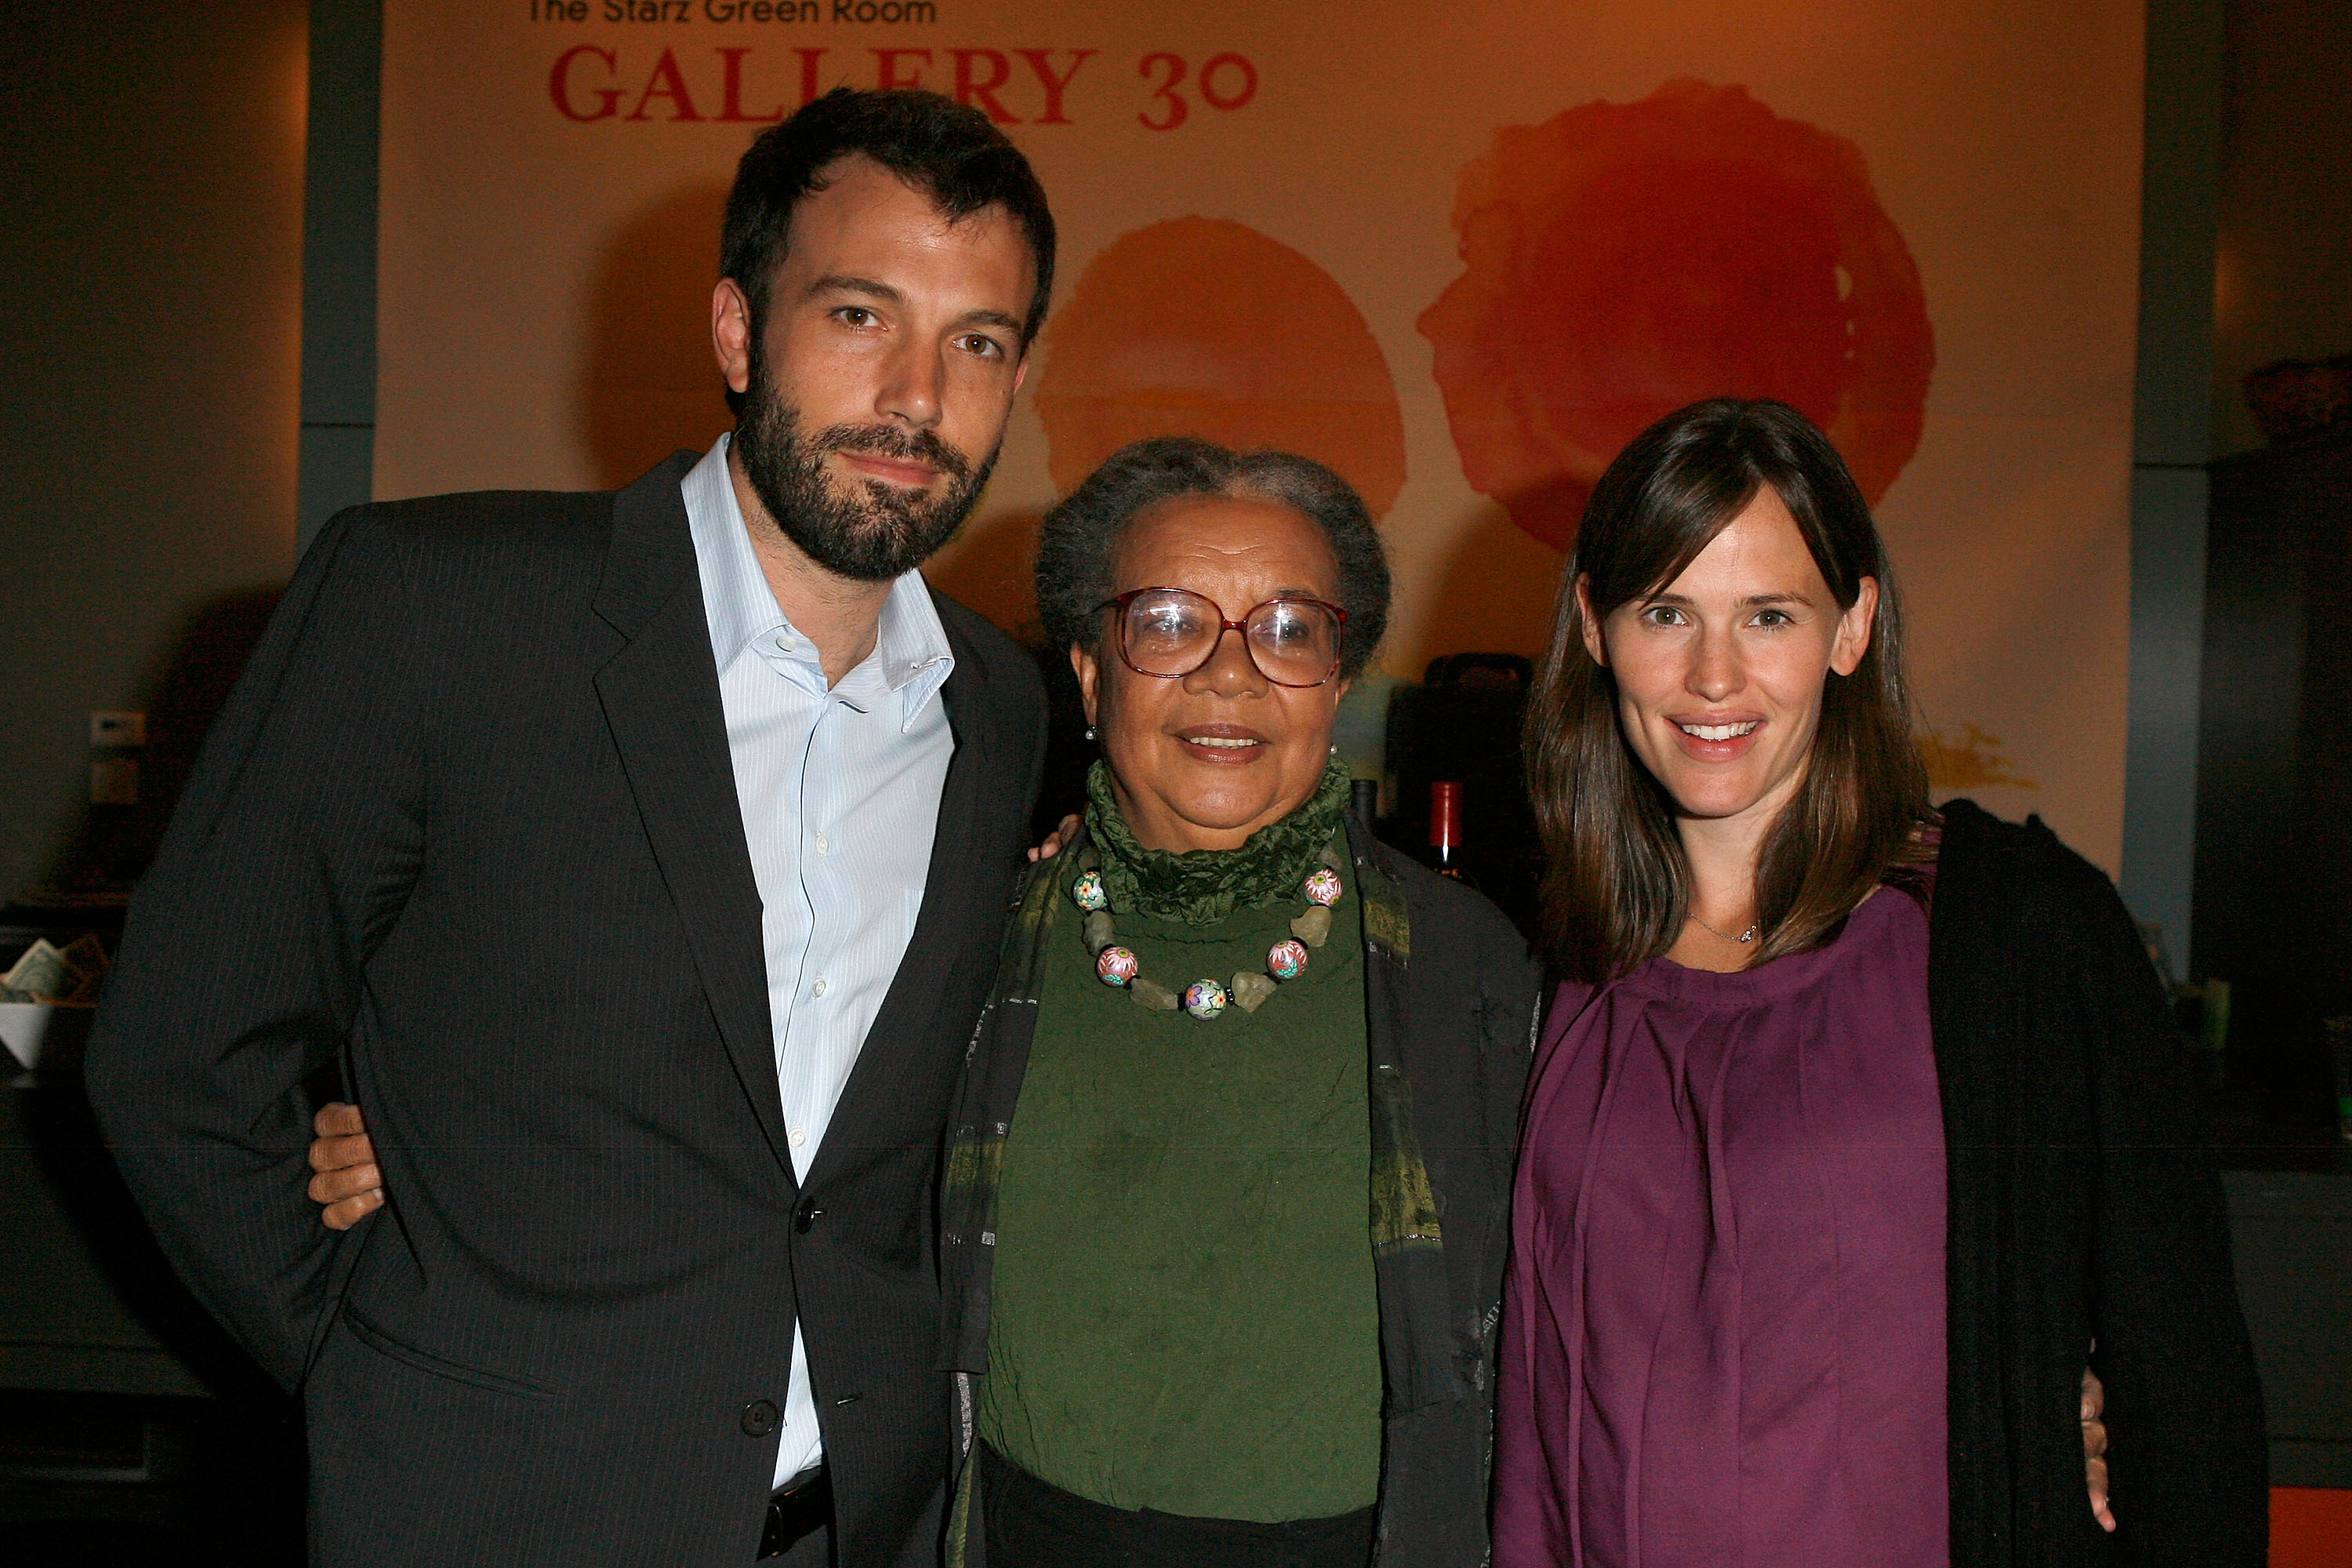 Actor Ben Affleck, Marian Wright Edelman and a pregnant Jennifer Garner attend the Sea Change Idea Forum Panel Discussion August 27, 2008 in Denver, Colorado. (Photo by Jeff Vespa/WireImage)